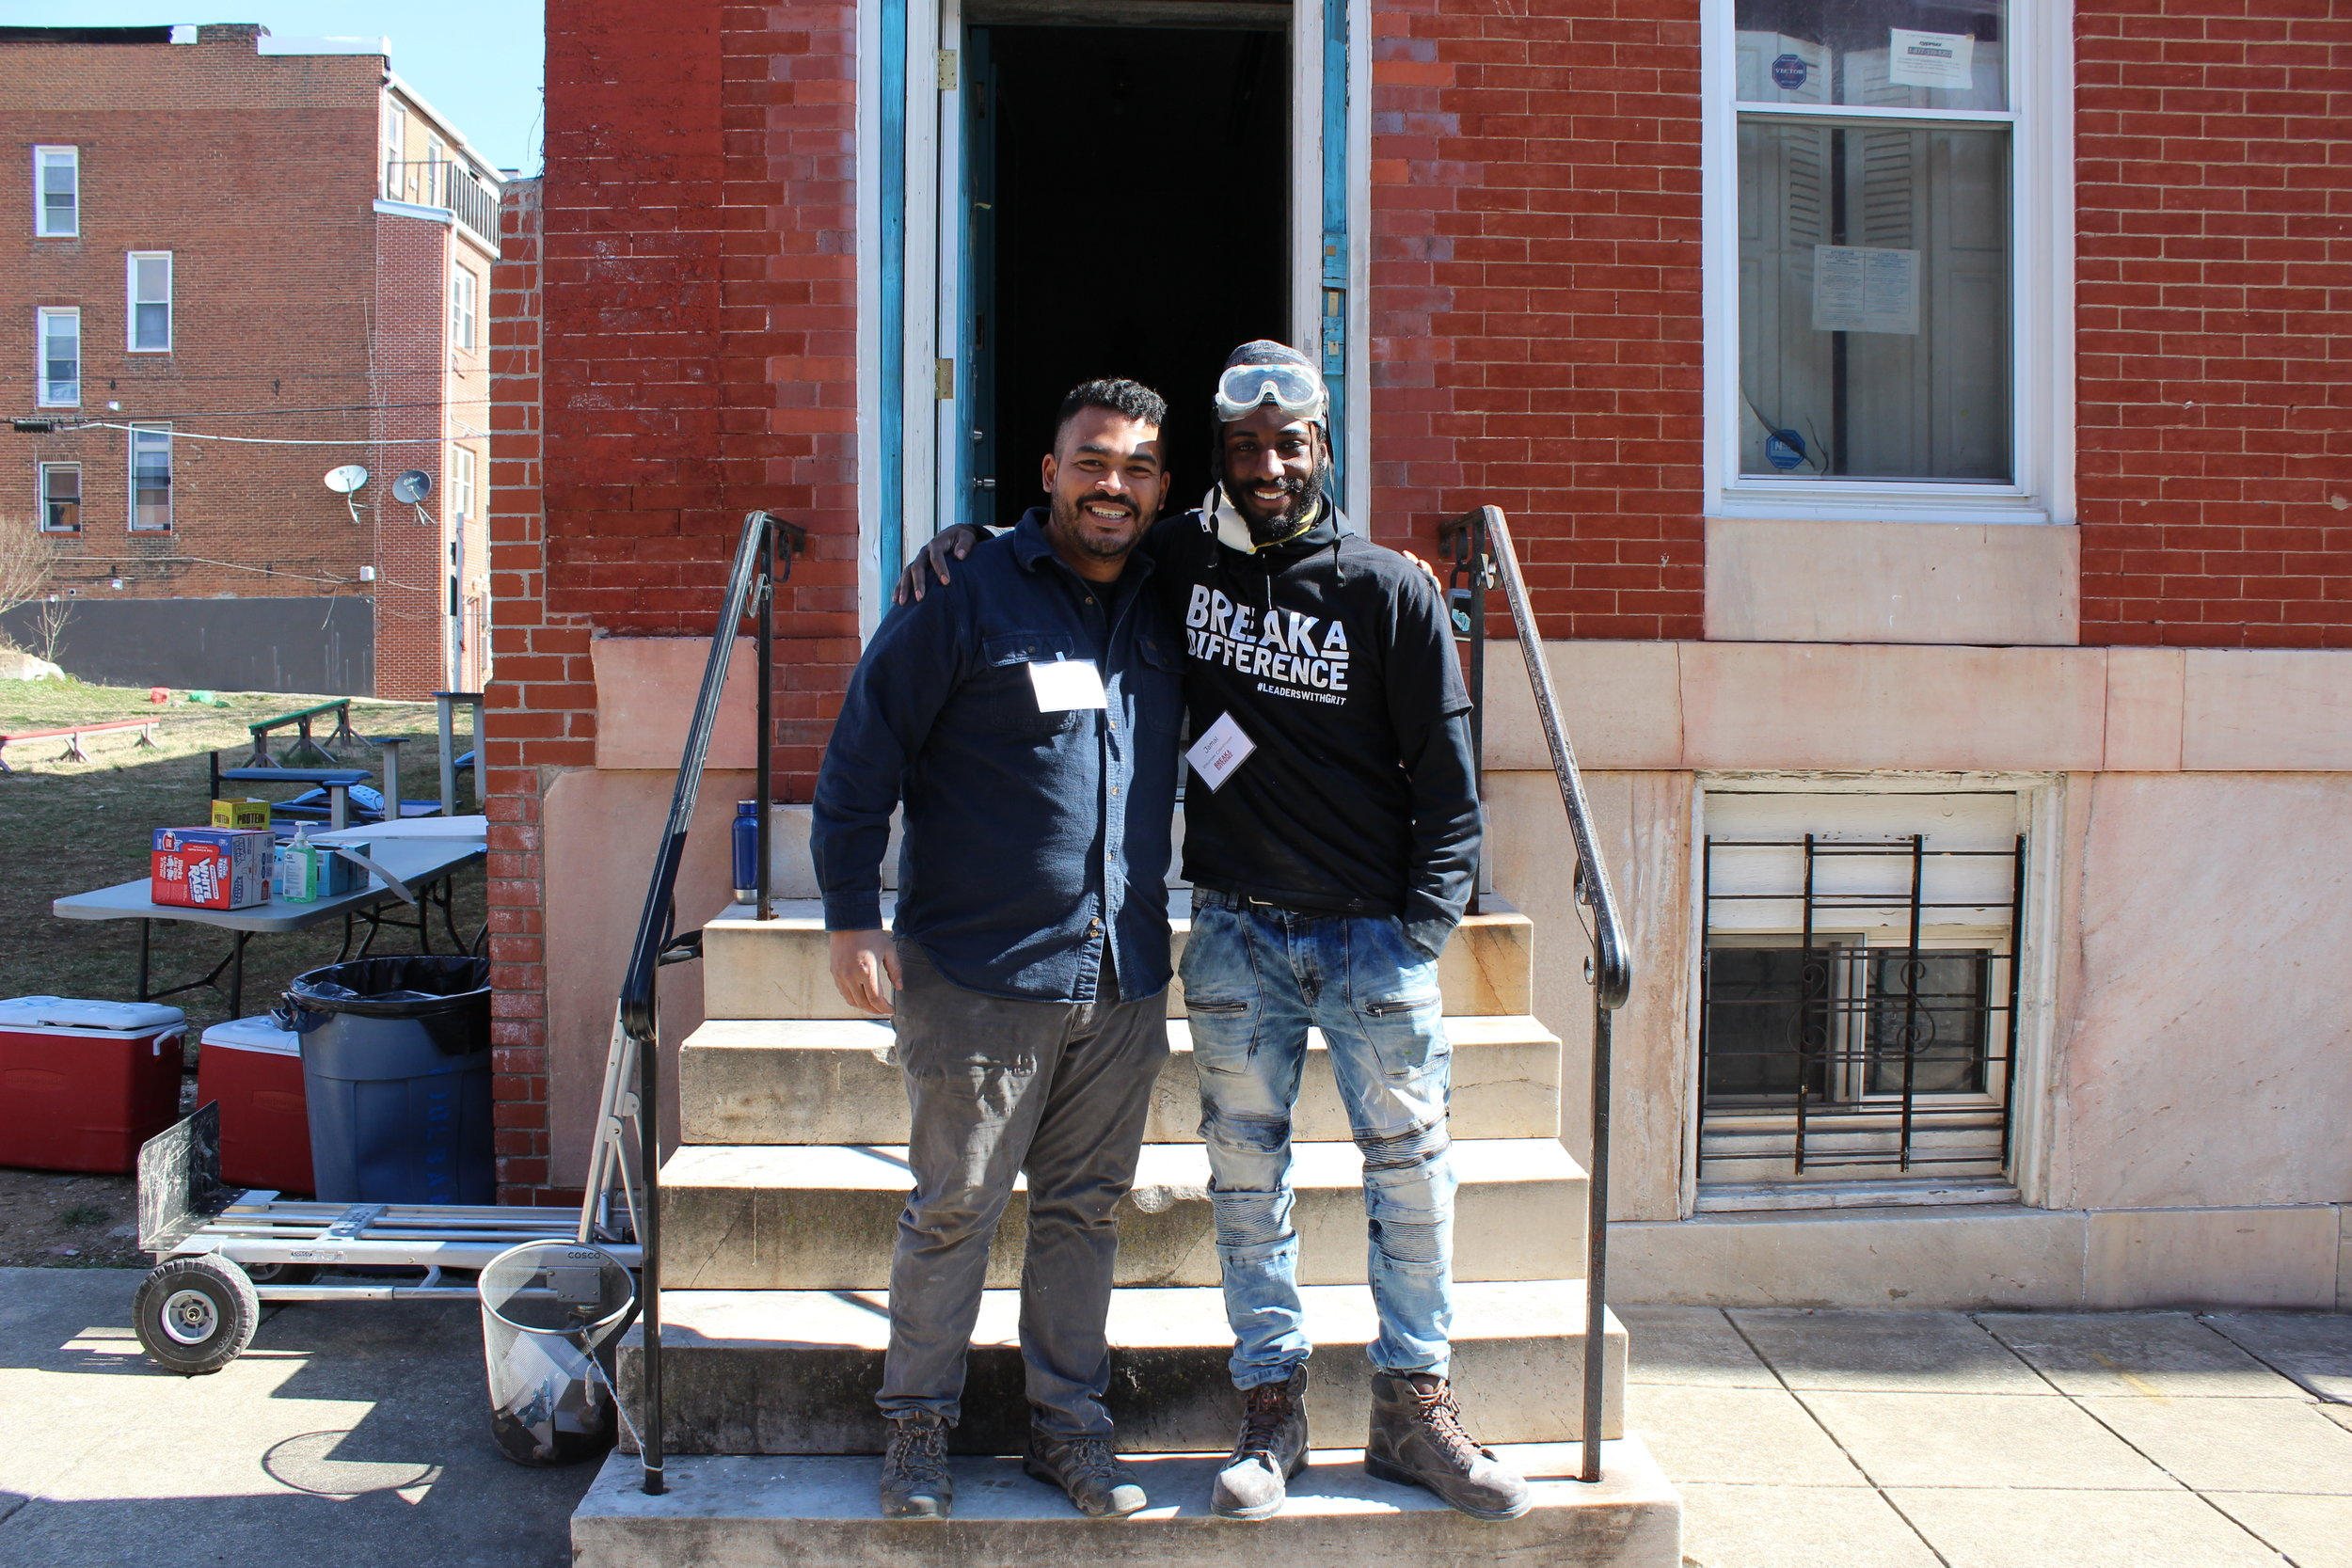 (L) Brian Pham, President of Break A Difference, and (R) Jamal Johnson, Engagement Ally with Break A Difference